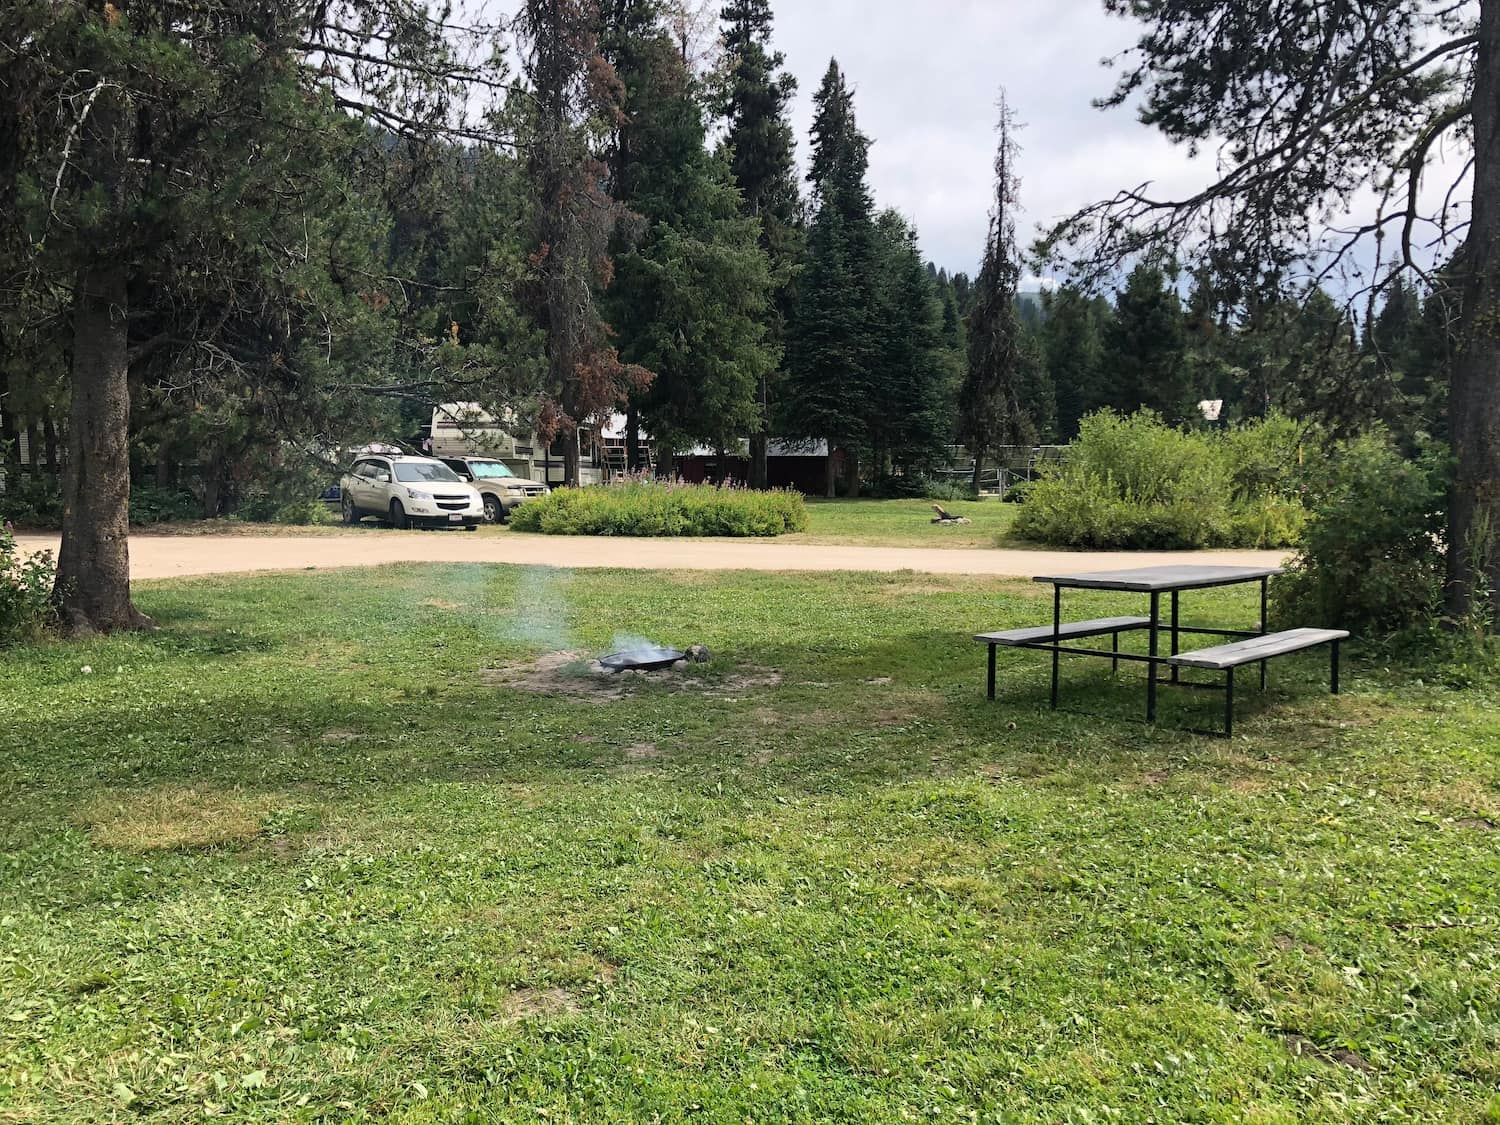 fire pit and picnic table at campground